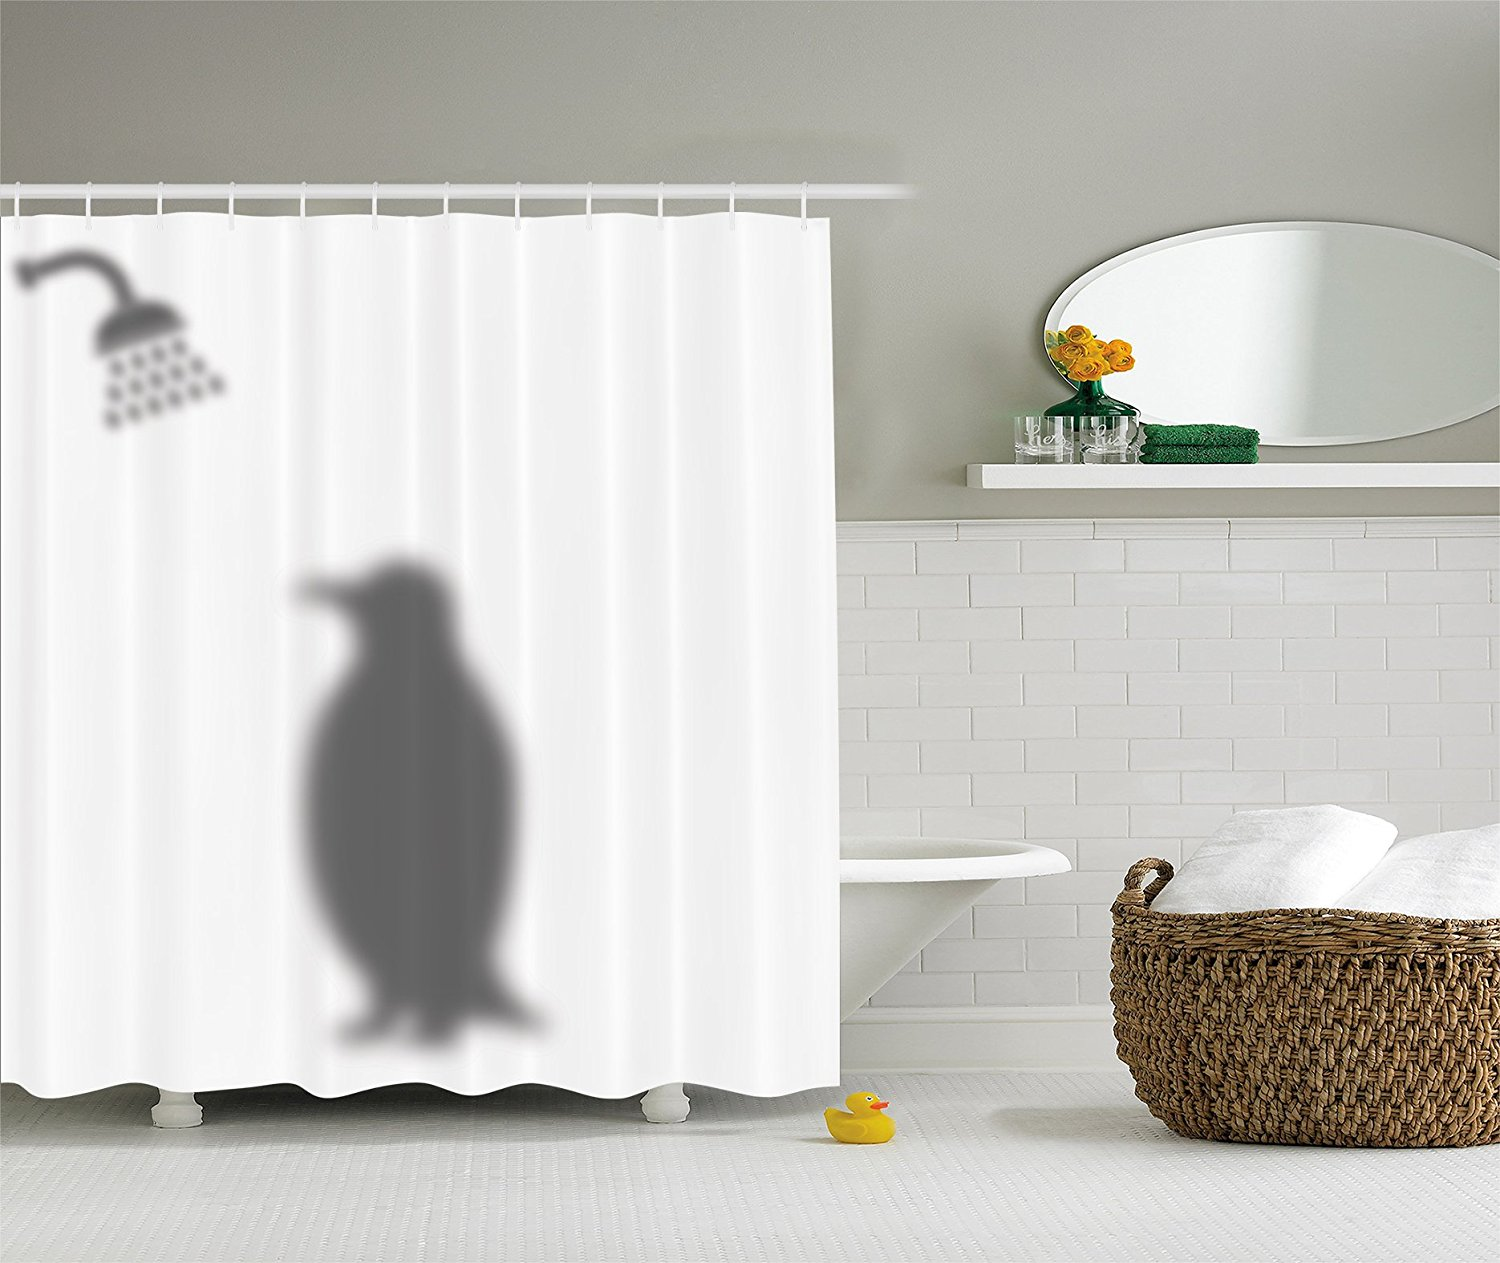 Memory Home Animals Decor Funny Waterproof Polyester Shower Curtain Penguin Shadow Fun Fabric With Hooks In Curtains From